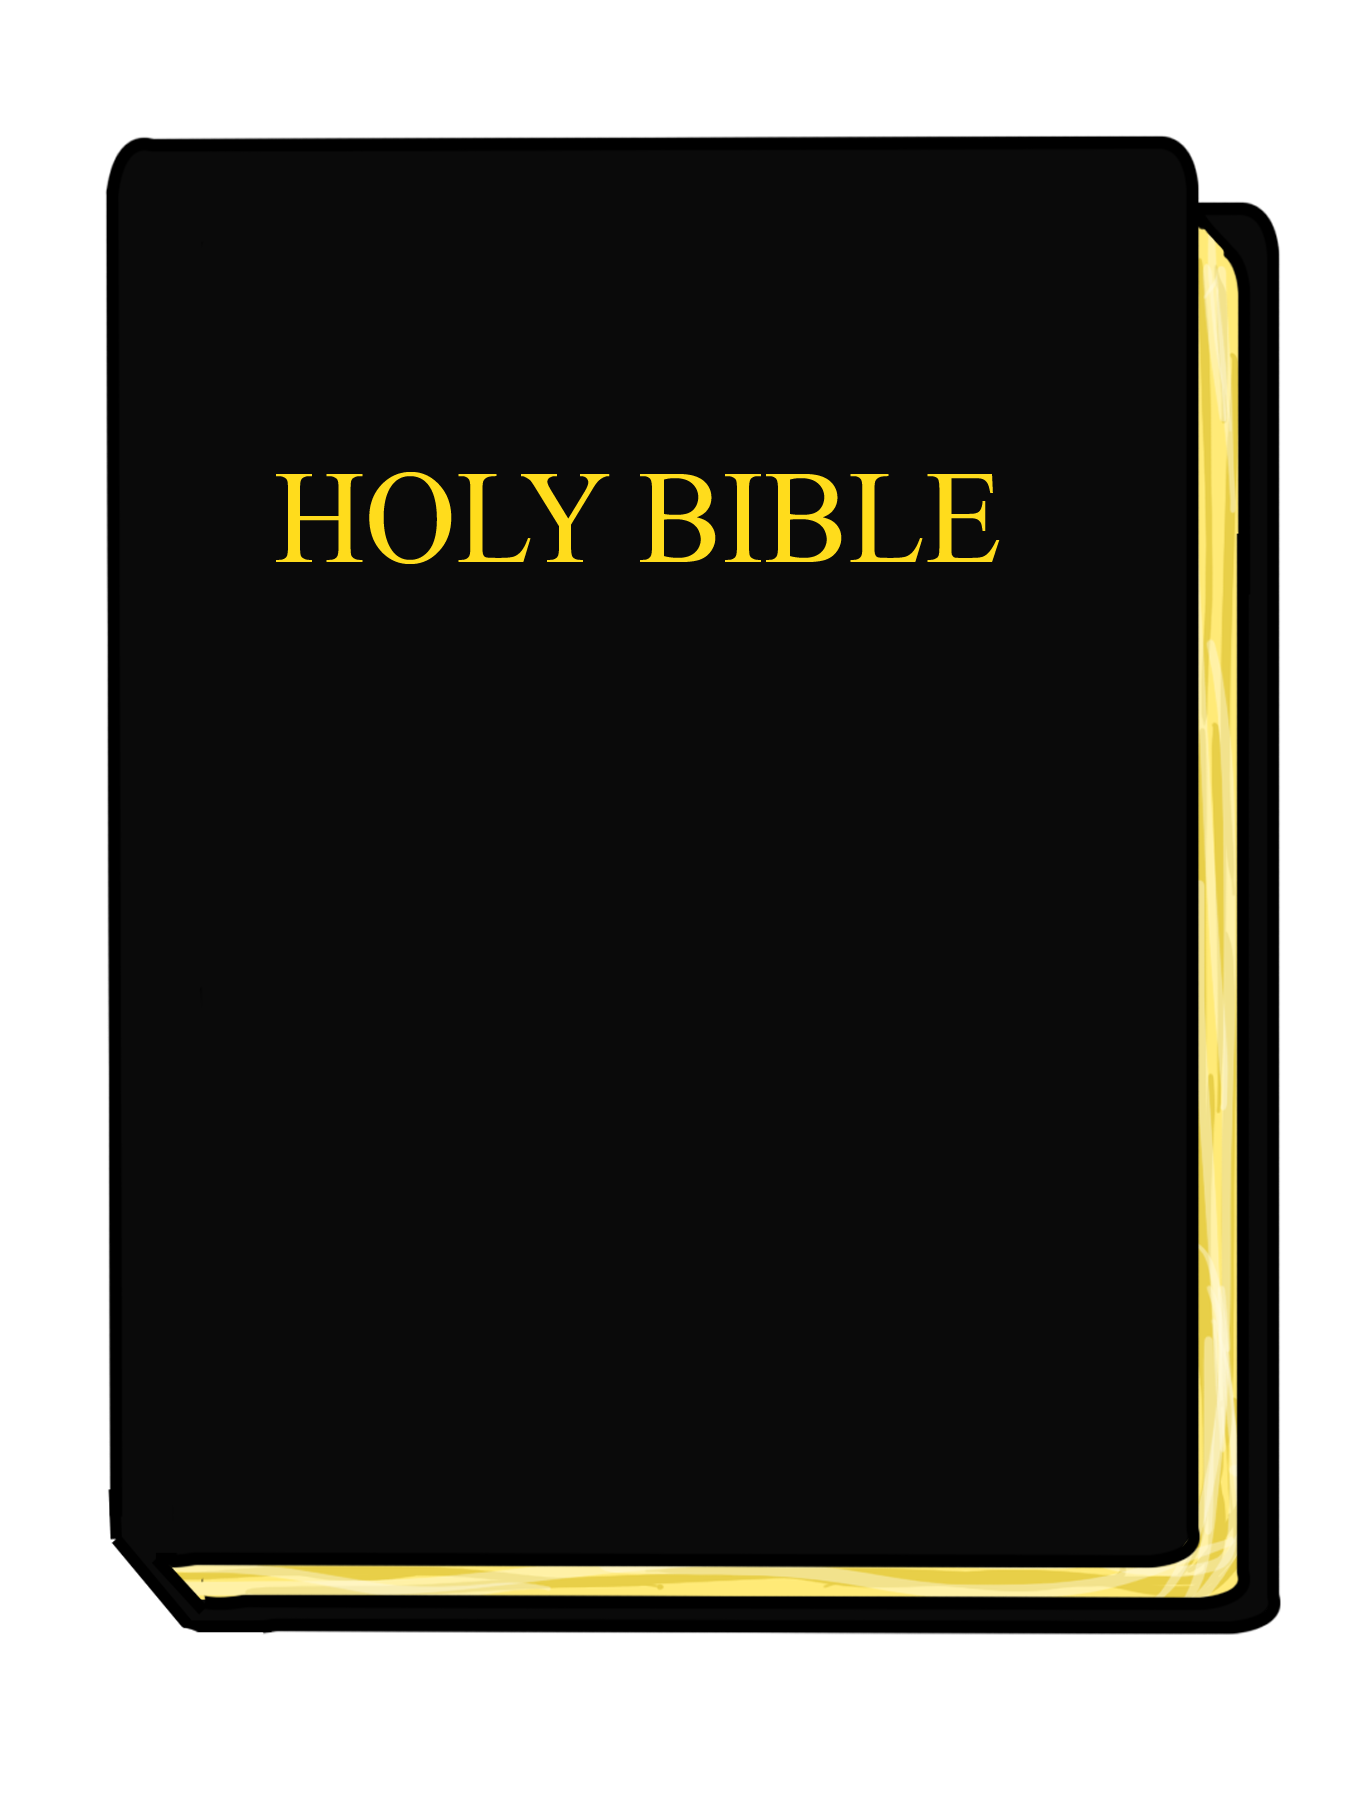 free to use amp public domain bible clip art bible bible [ 1350 x 1800 Pixel ]